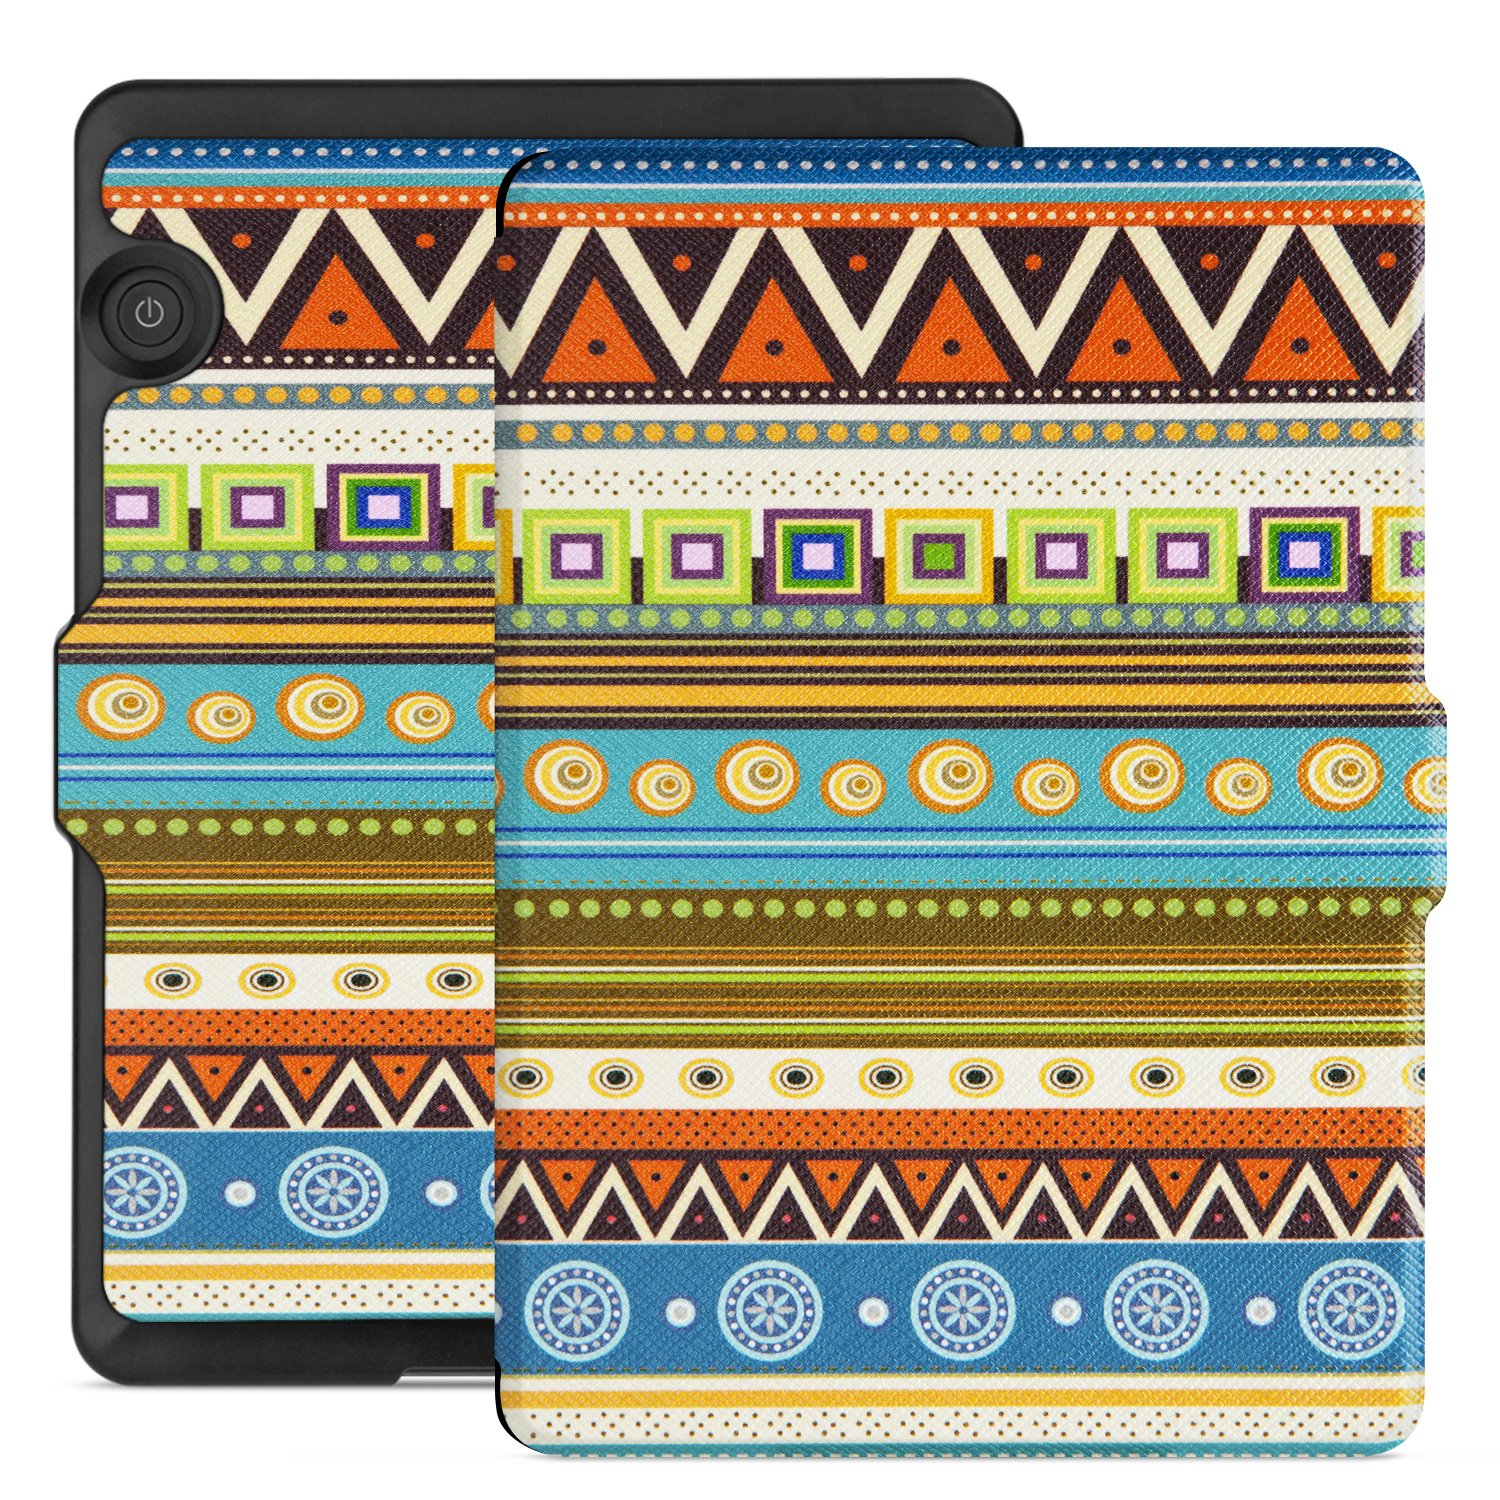 Ayotu Case for Kindle Voyage E-reader Auto Wake and Sleep Smart Protective Cover, For 2014 Kindle Voyage Case Painting Series KV-04 The Totem by Ayotu (Image #1)